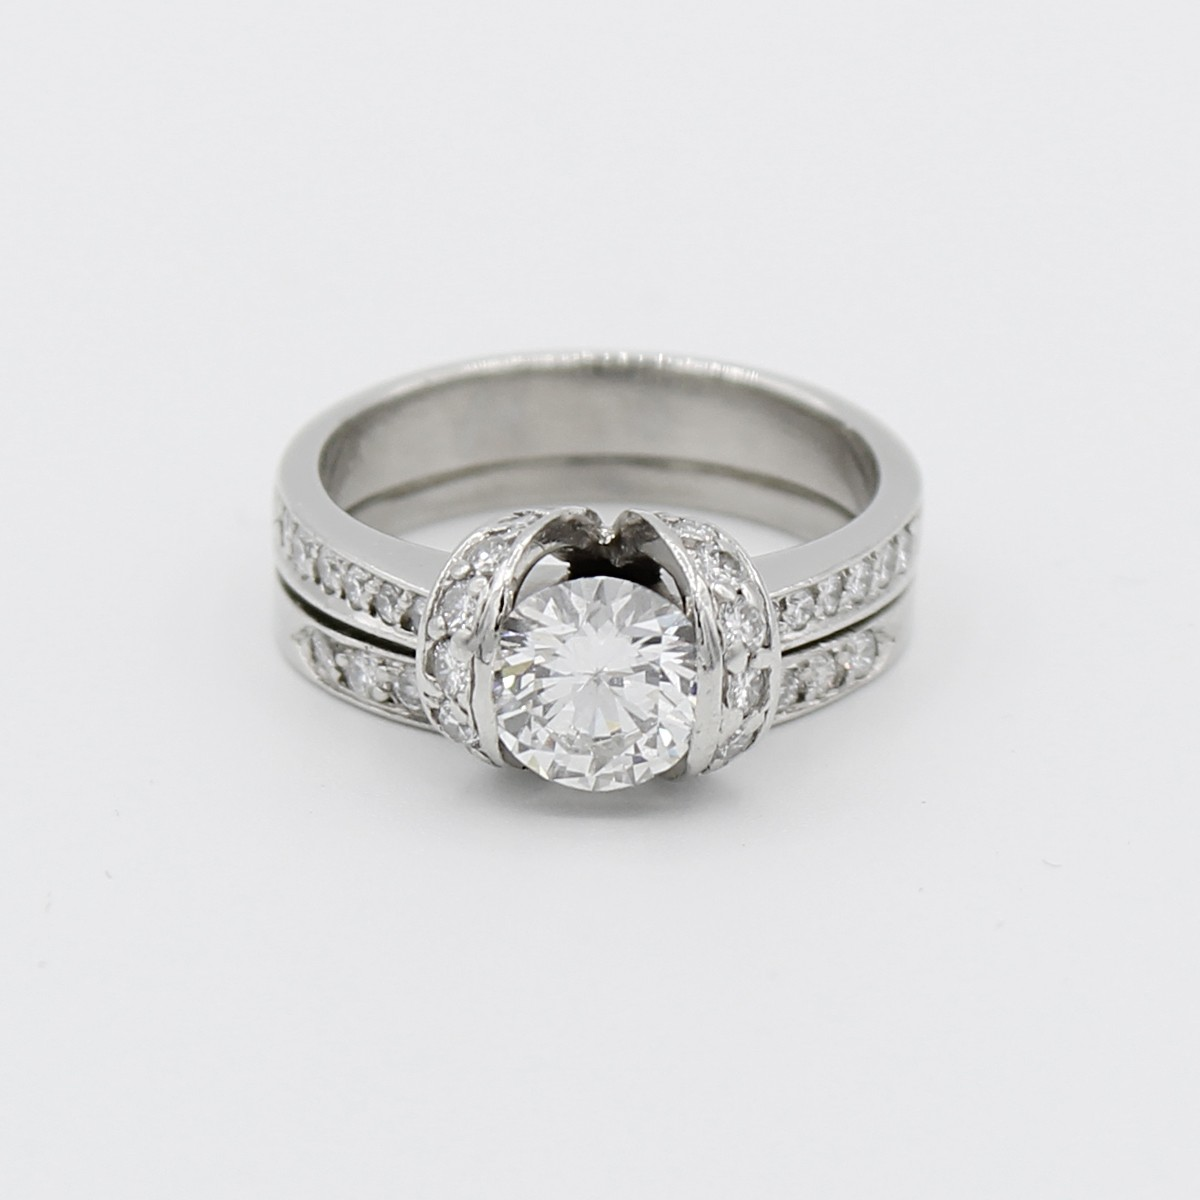 PLATINUM ROUND BRILLIANT DIAMOND RING 1.09 CARATS WITH MATCHING BAND